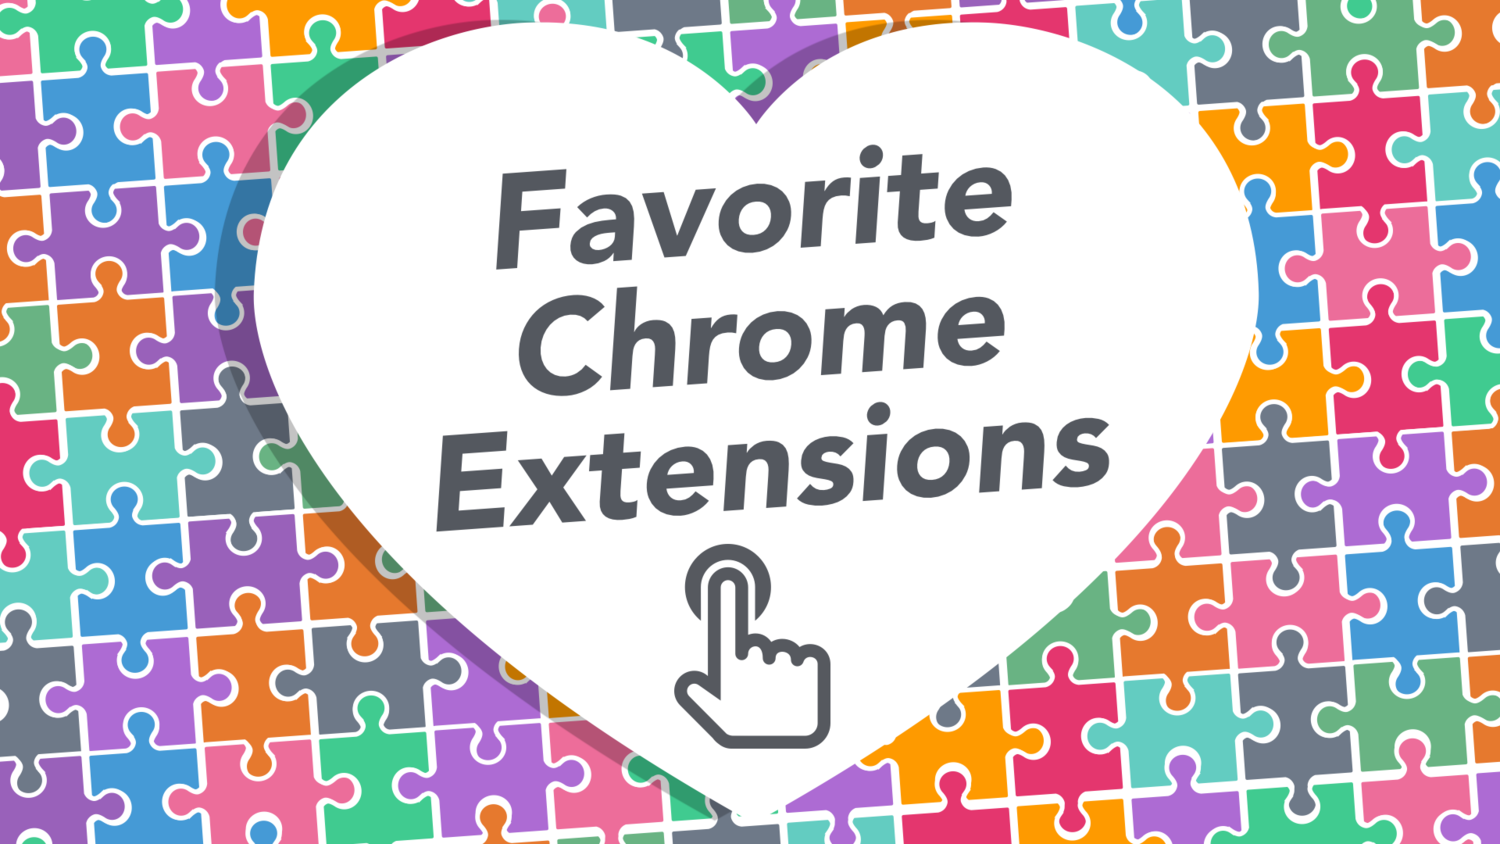 Favorite Chrome Extensions — Learning in Hand with Tony Vincent